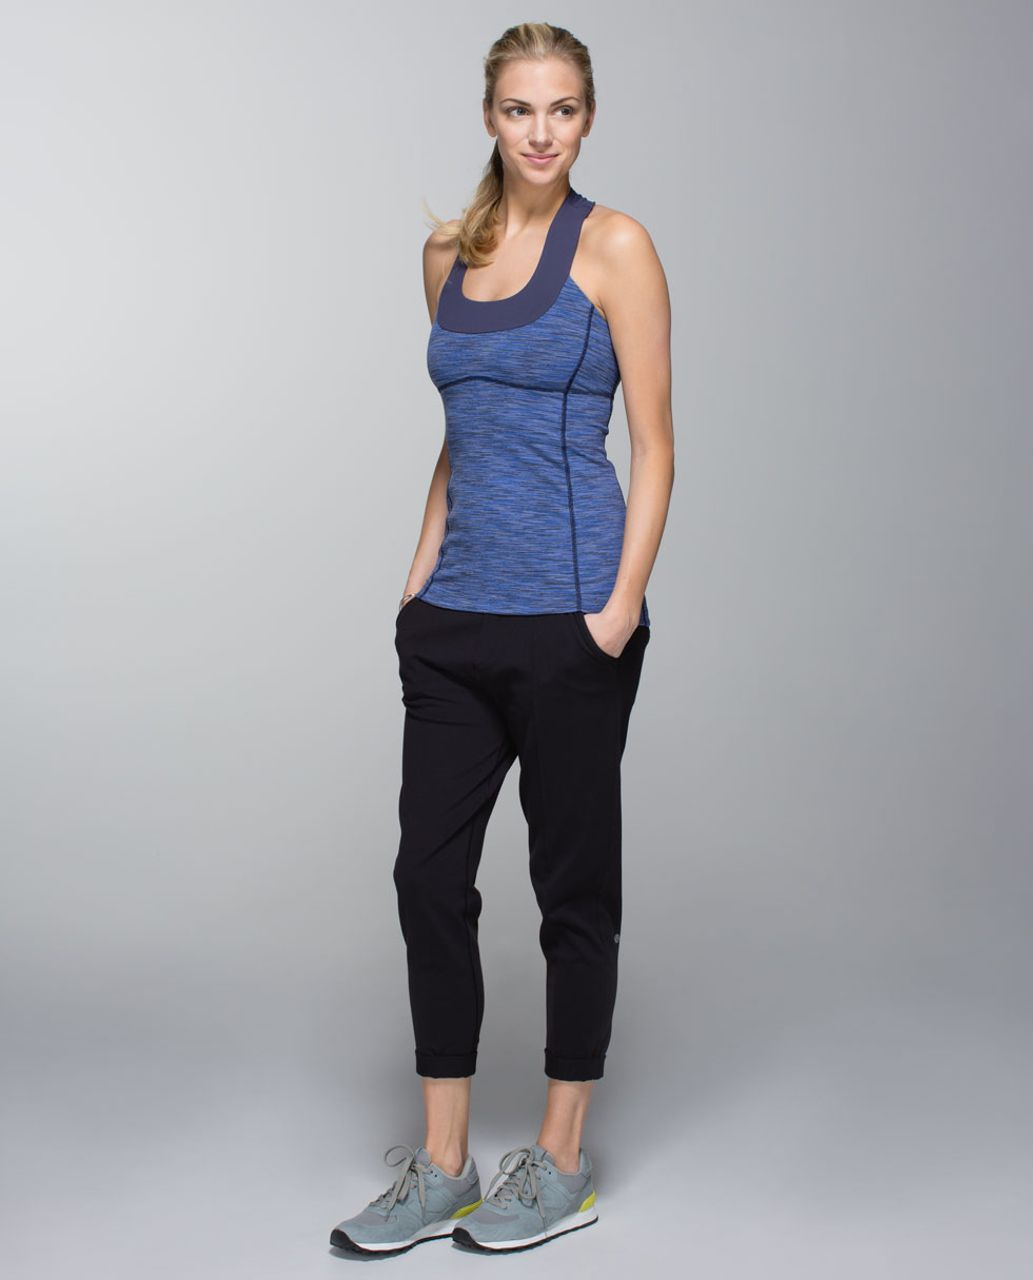 Lululemon Scoop Neck Tank *Luon - Wee Are From Space Cadet Blue / Cadet Blue